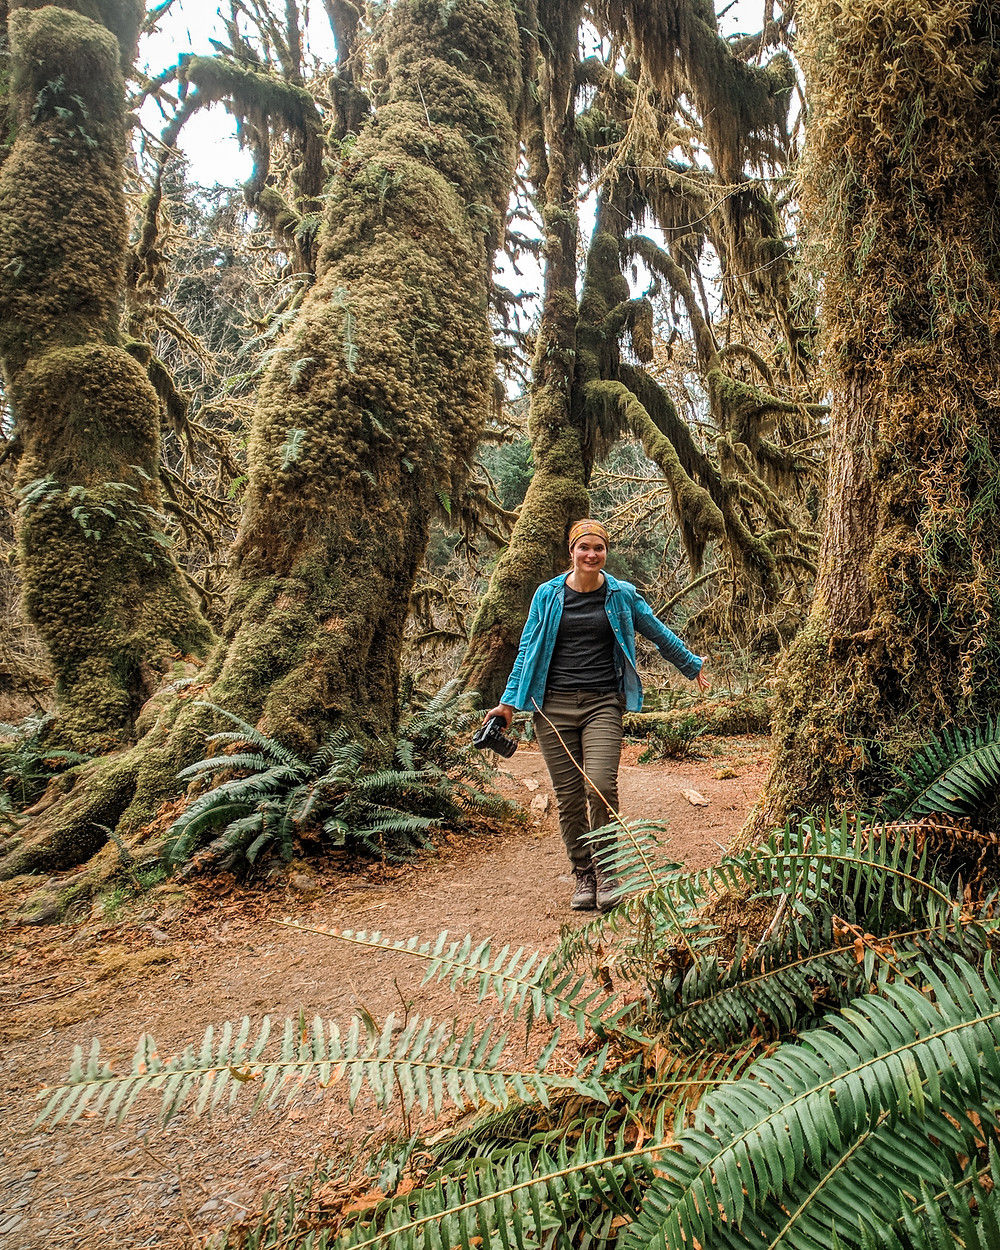 Hall of Mosses Trail in the Hoh Rain Forest at Olympic National Park in Washington during our PNW road trip.